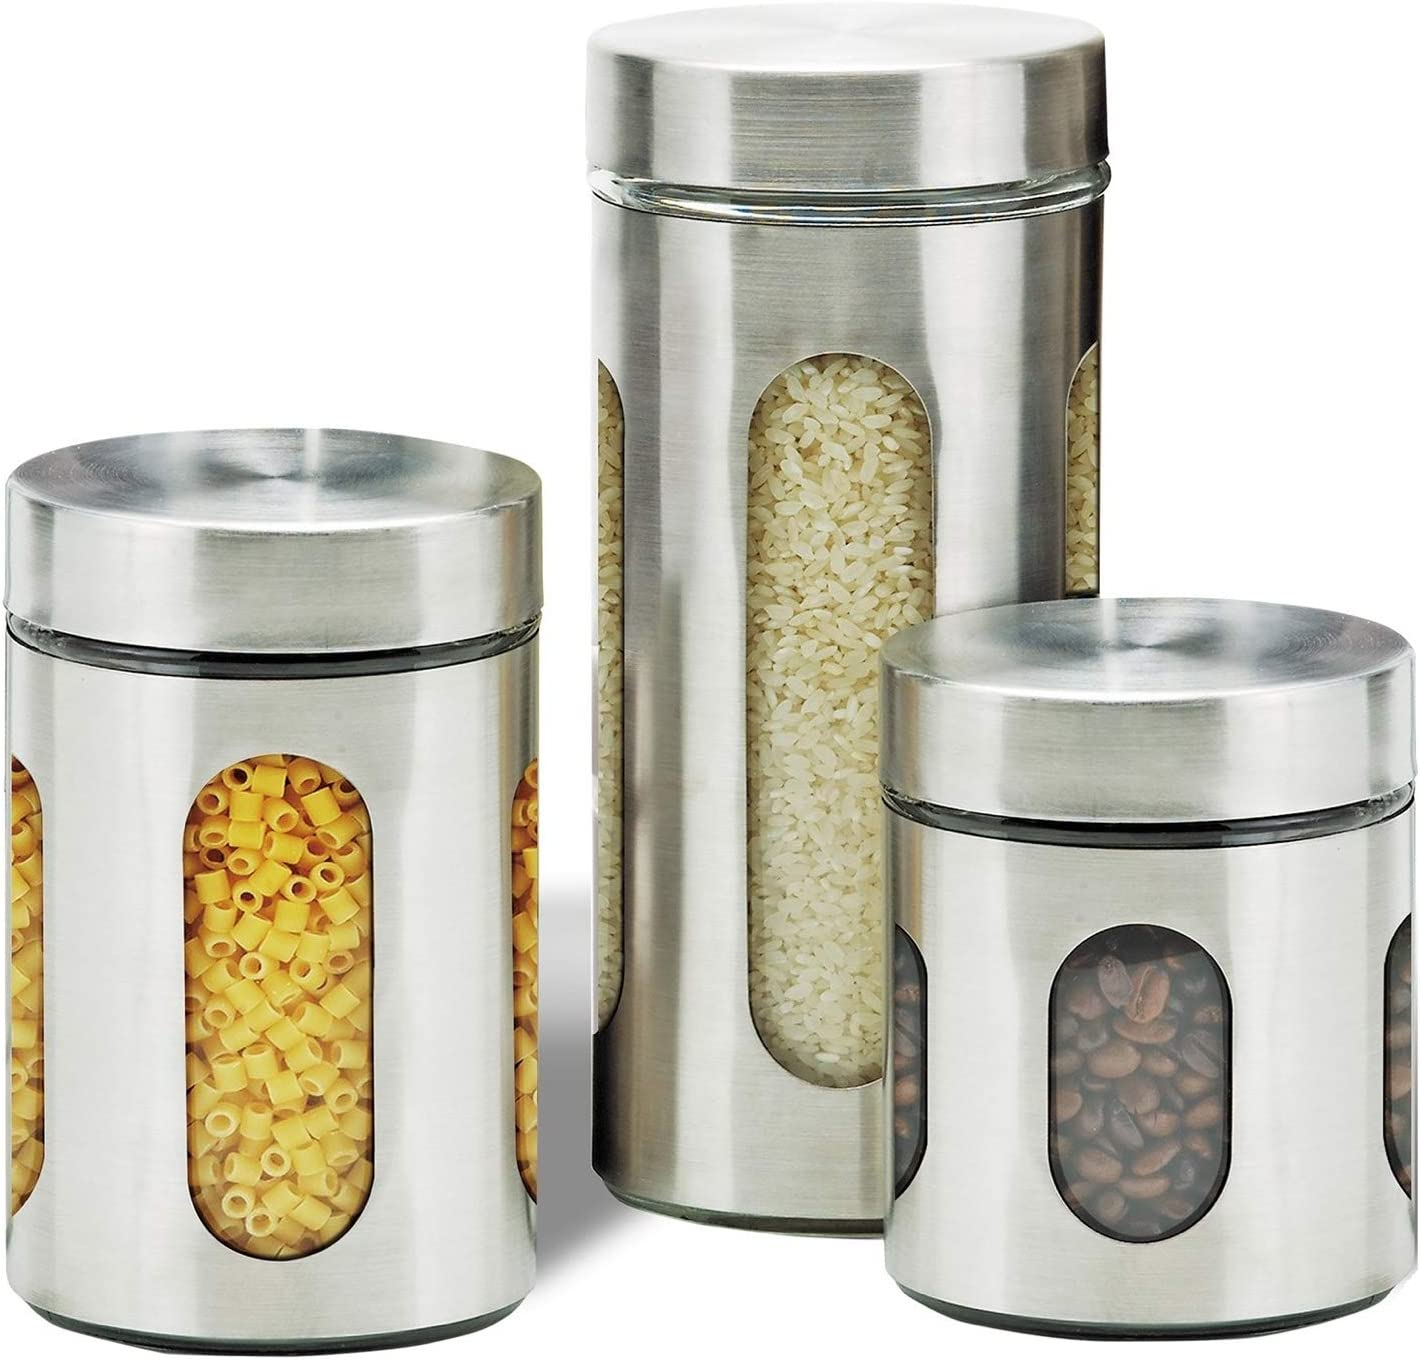 Amazon Com Air Tight Kitchen Canister Set By Premius 3 Piece Glass And Metal Canisters Quick Access And Space Saving Great Safe And Fresh Food Convenient Sizes Modern Design Stainless Steel Silver Kitchen Dining